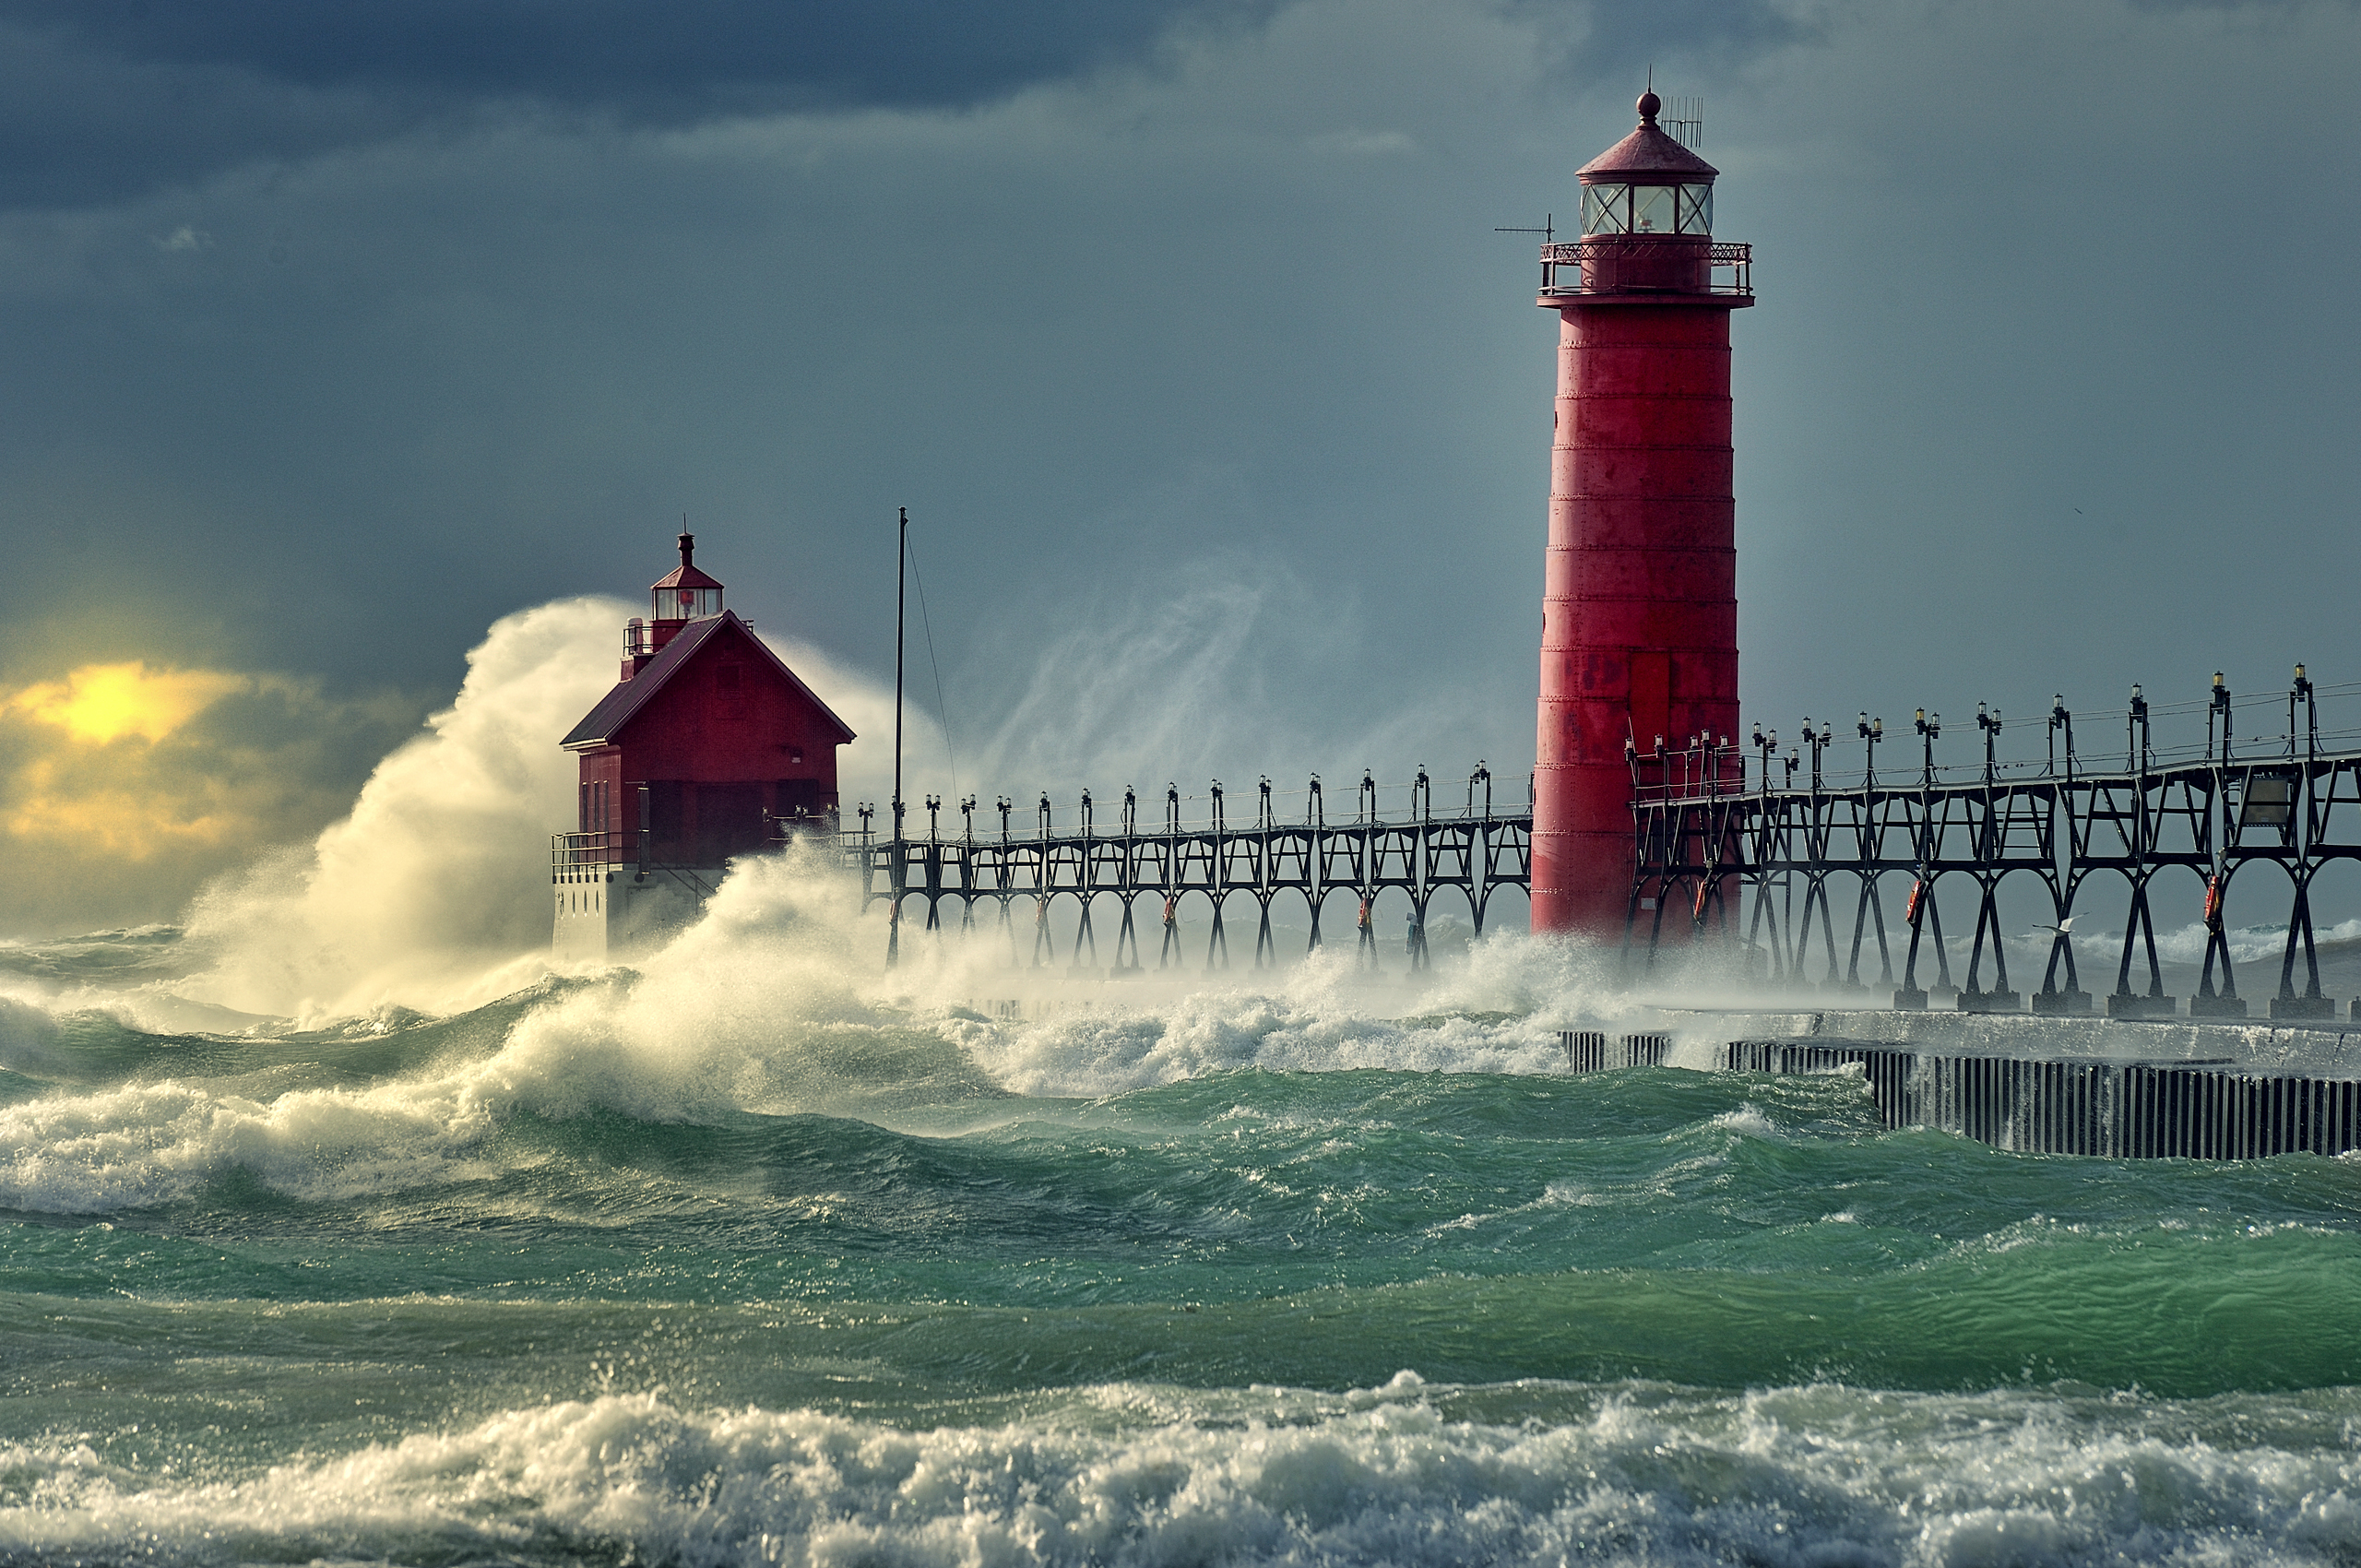 Red lighthouse photo